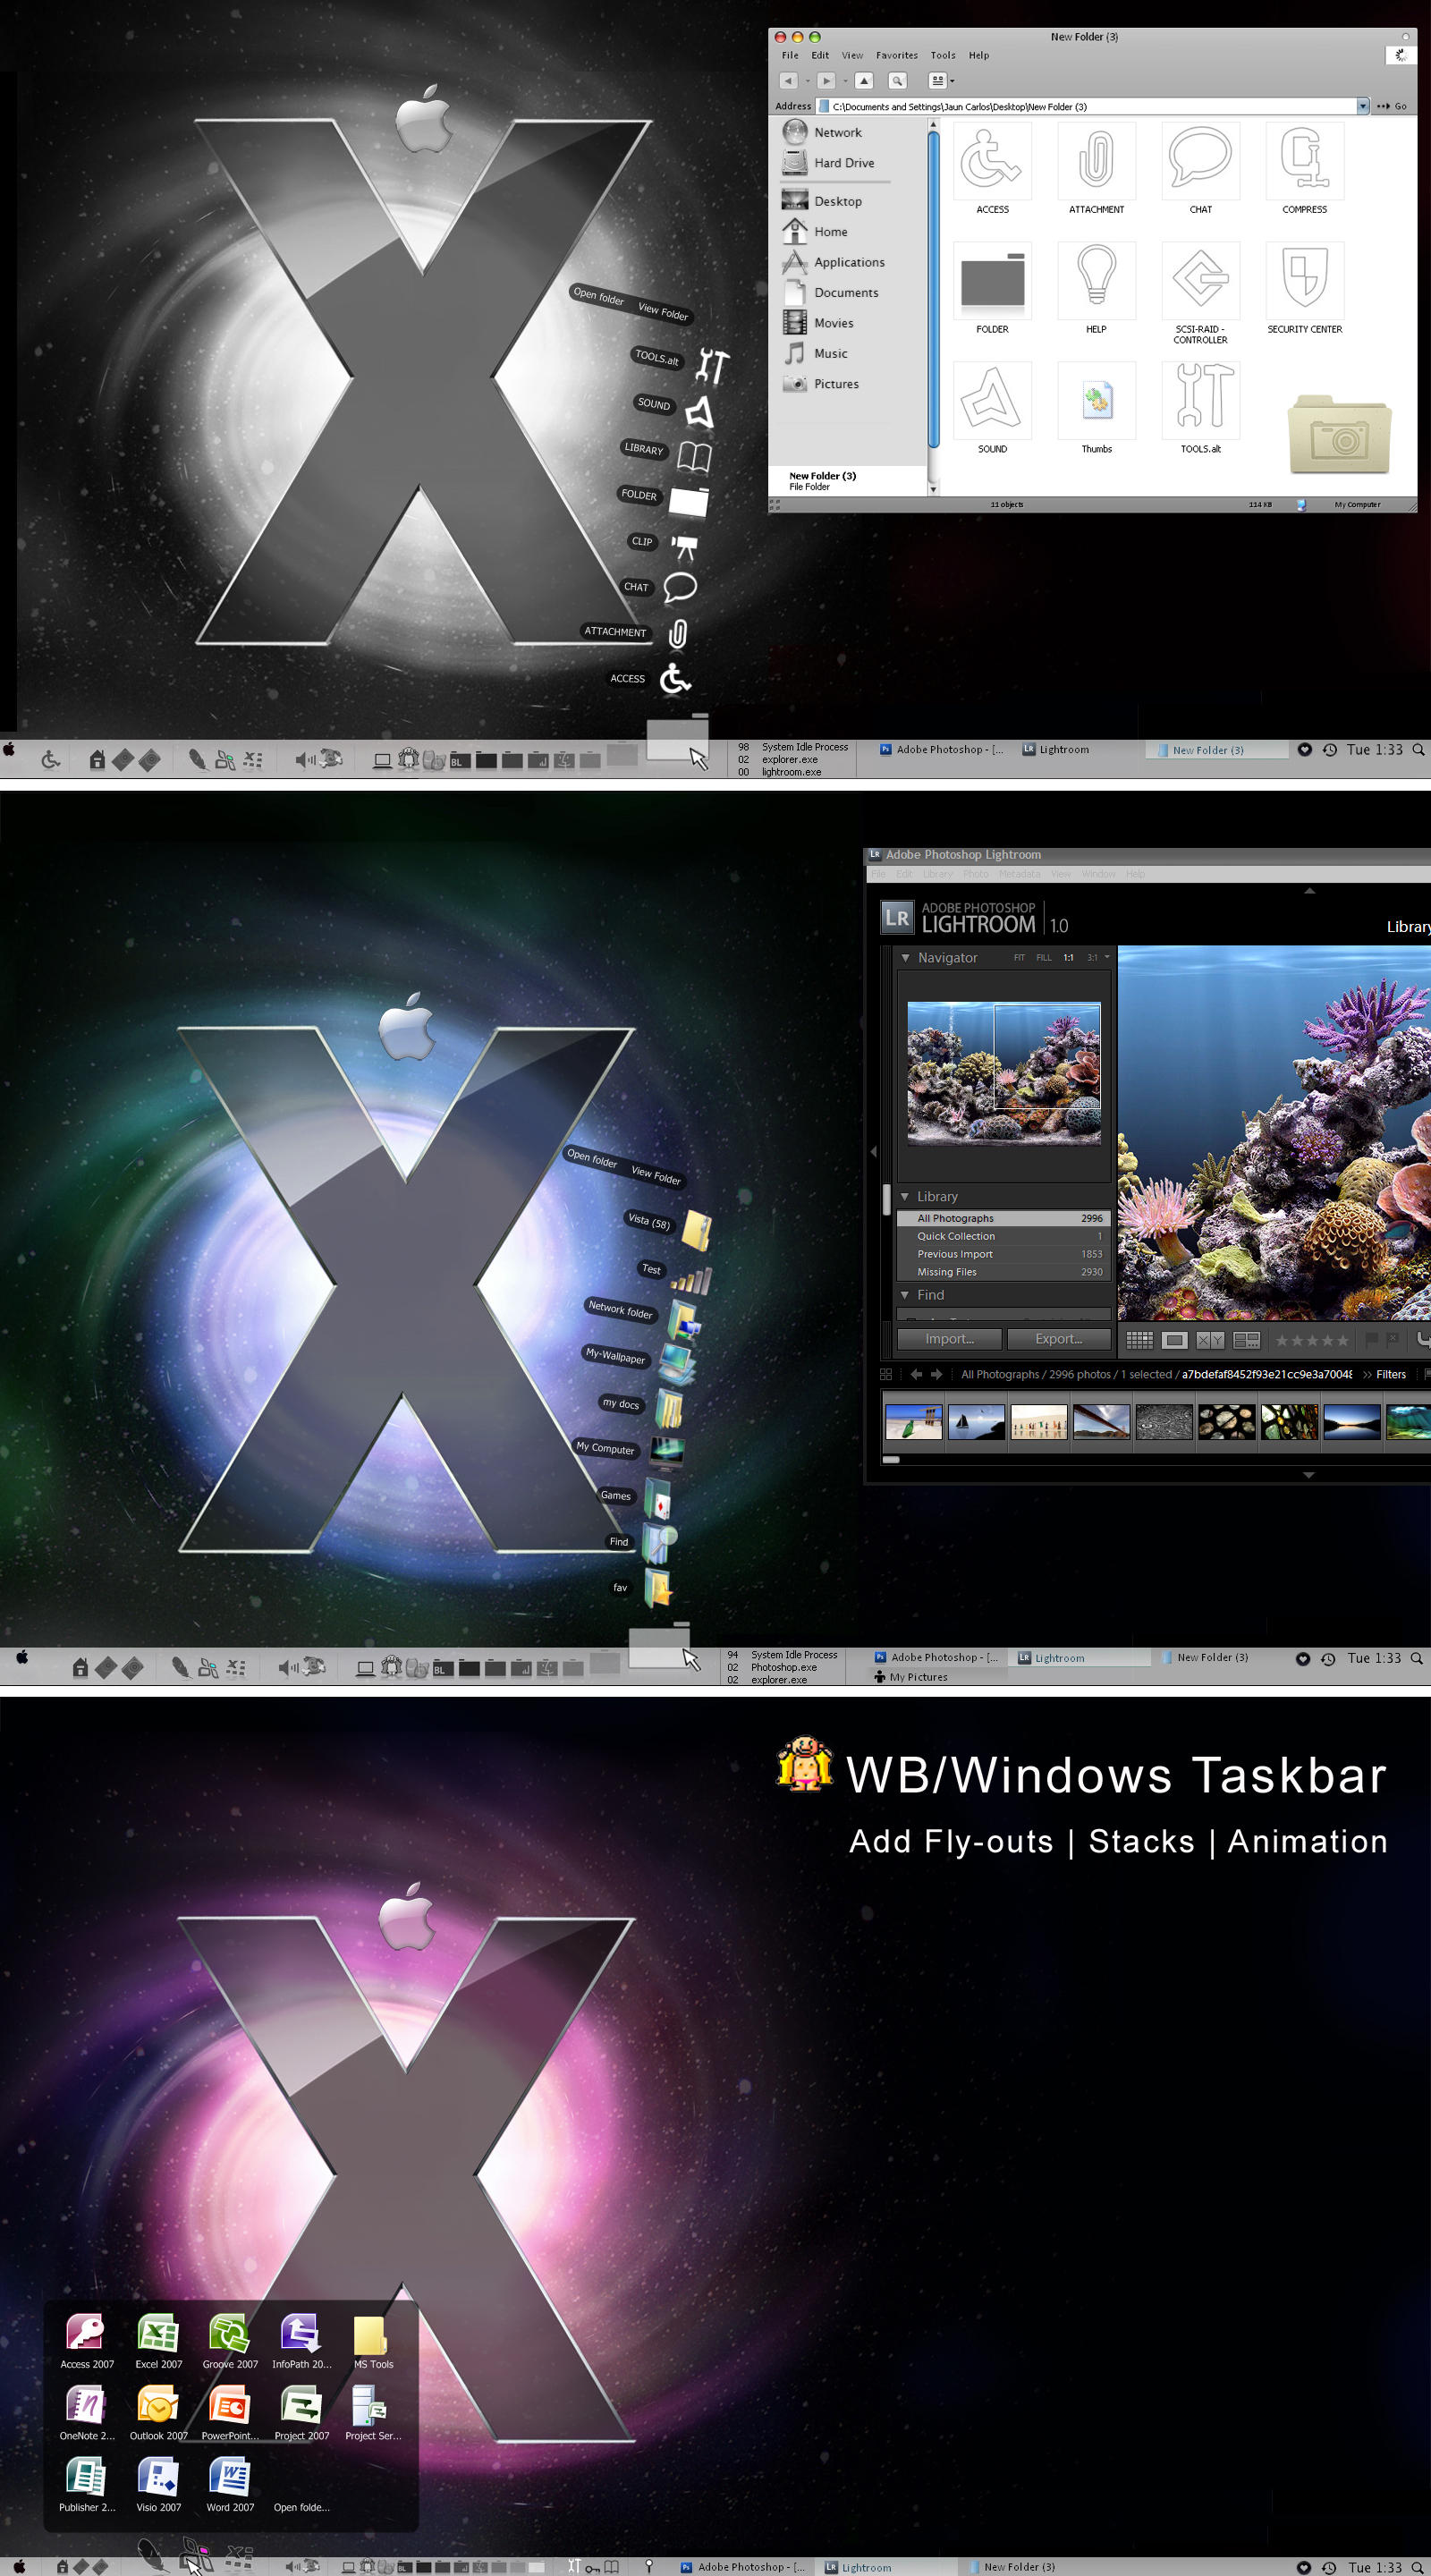 Windows Taskbar+leopard Stacks by Pariah07